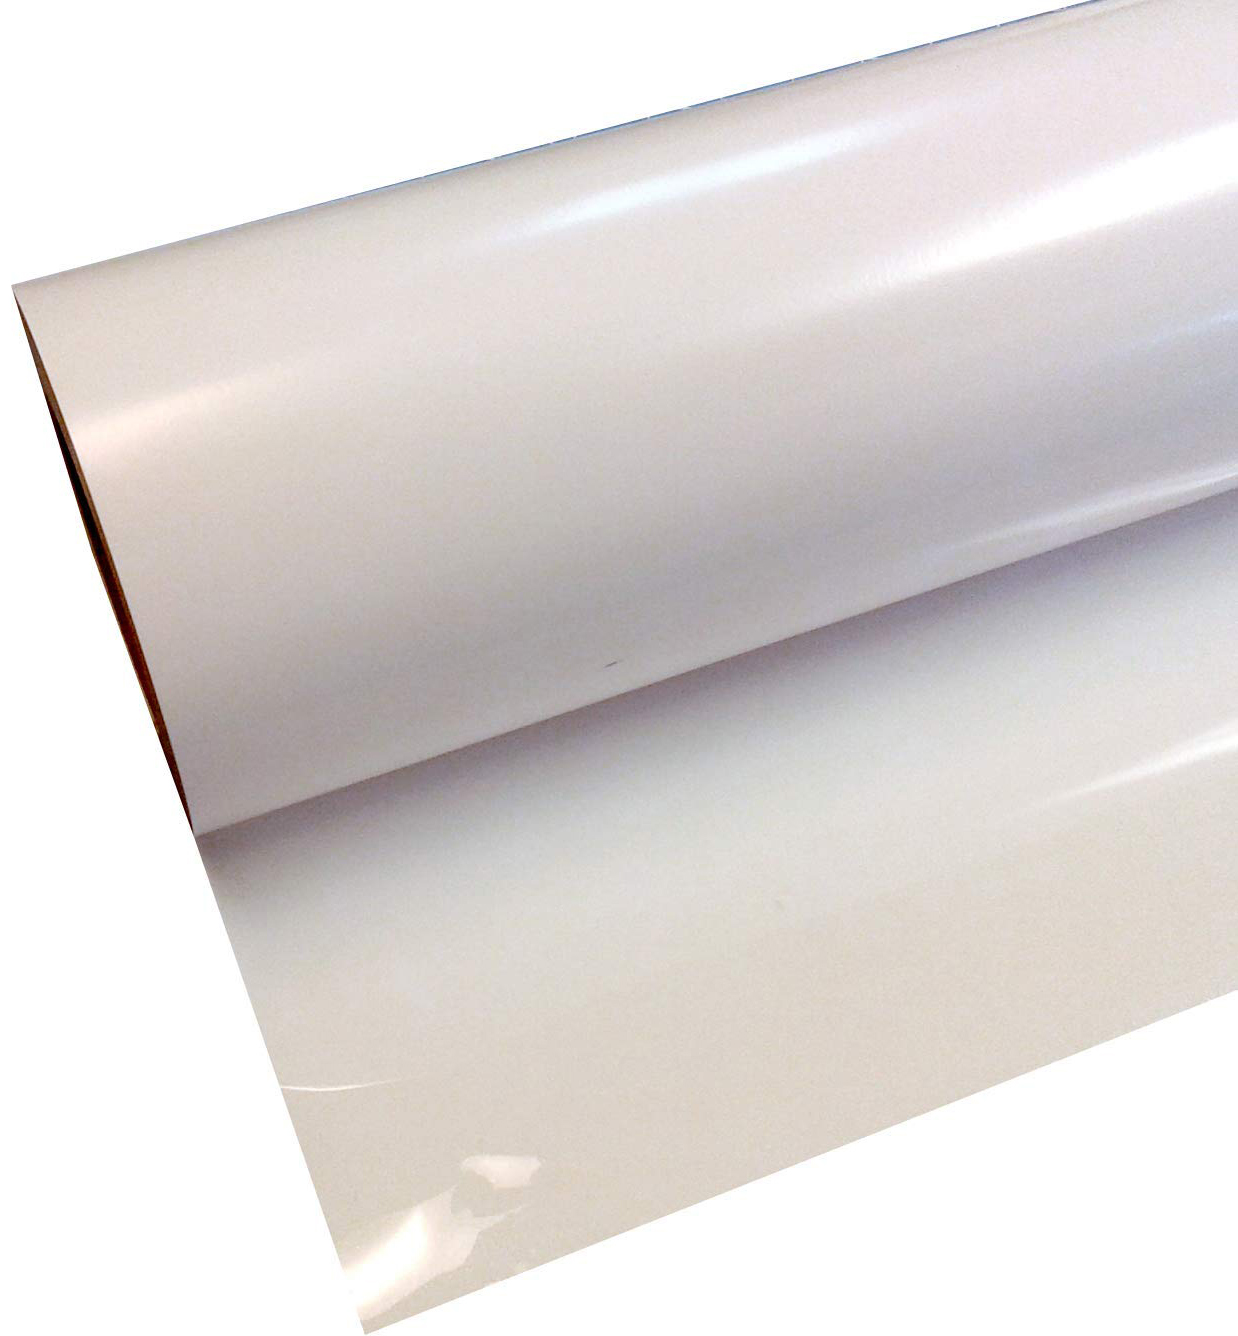 Specialty Materials ThermoFlex Turbo Heat Transfer Film